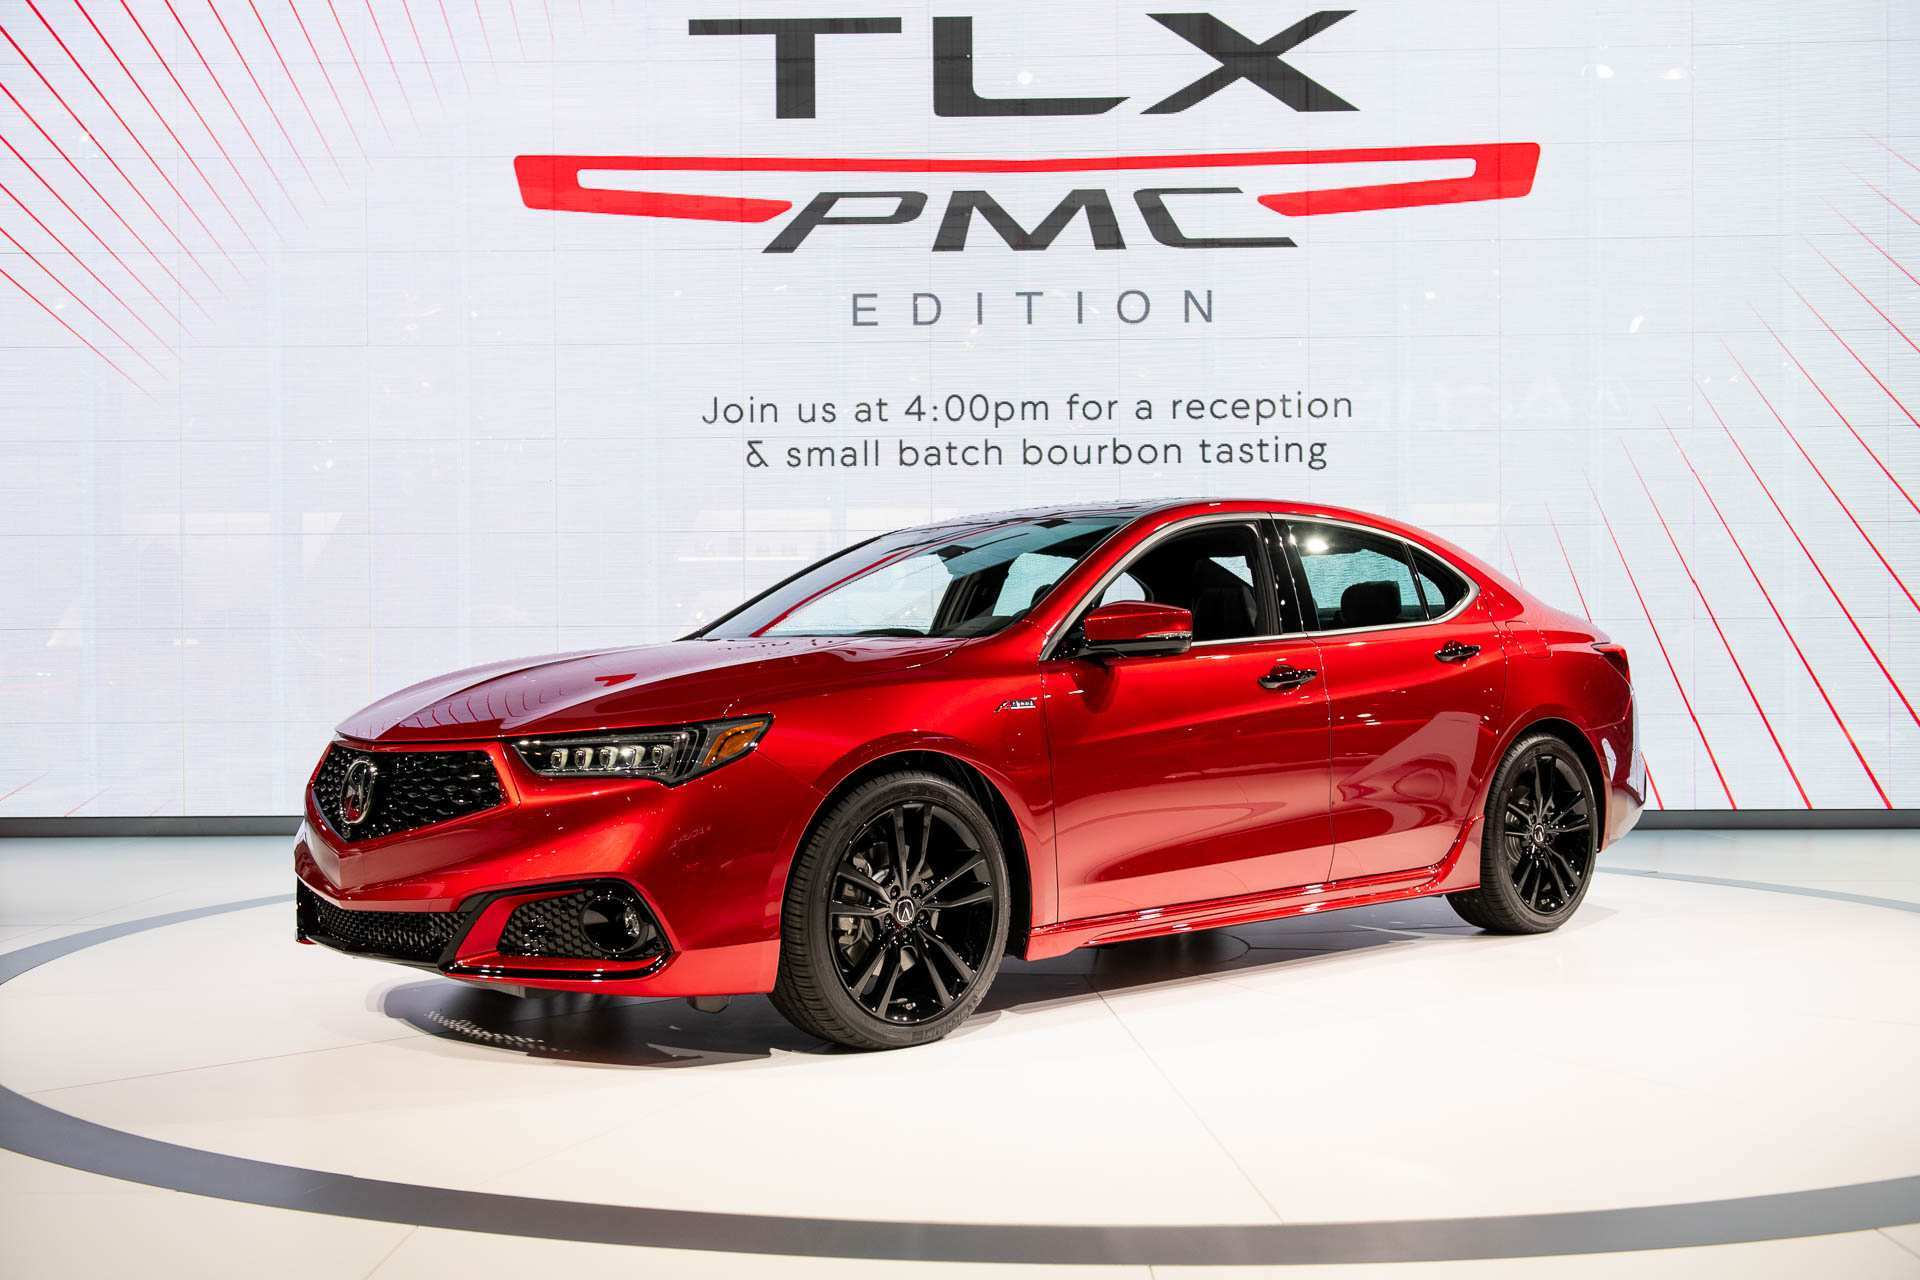 83 New Acura Tlx 2020 Price Picture with Acura Tlx 2020 Price